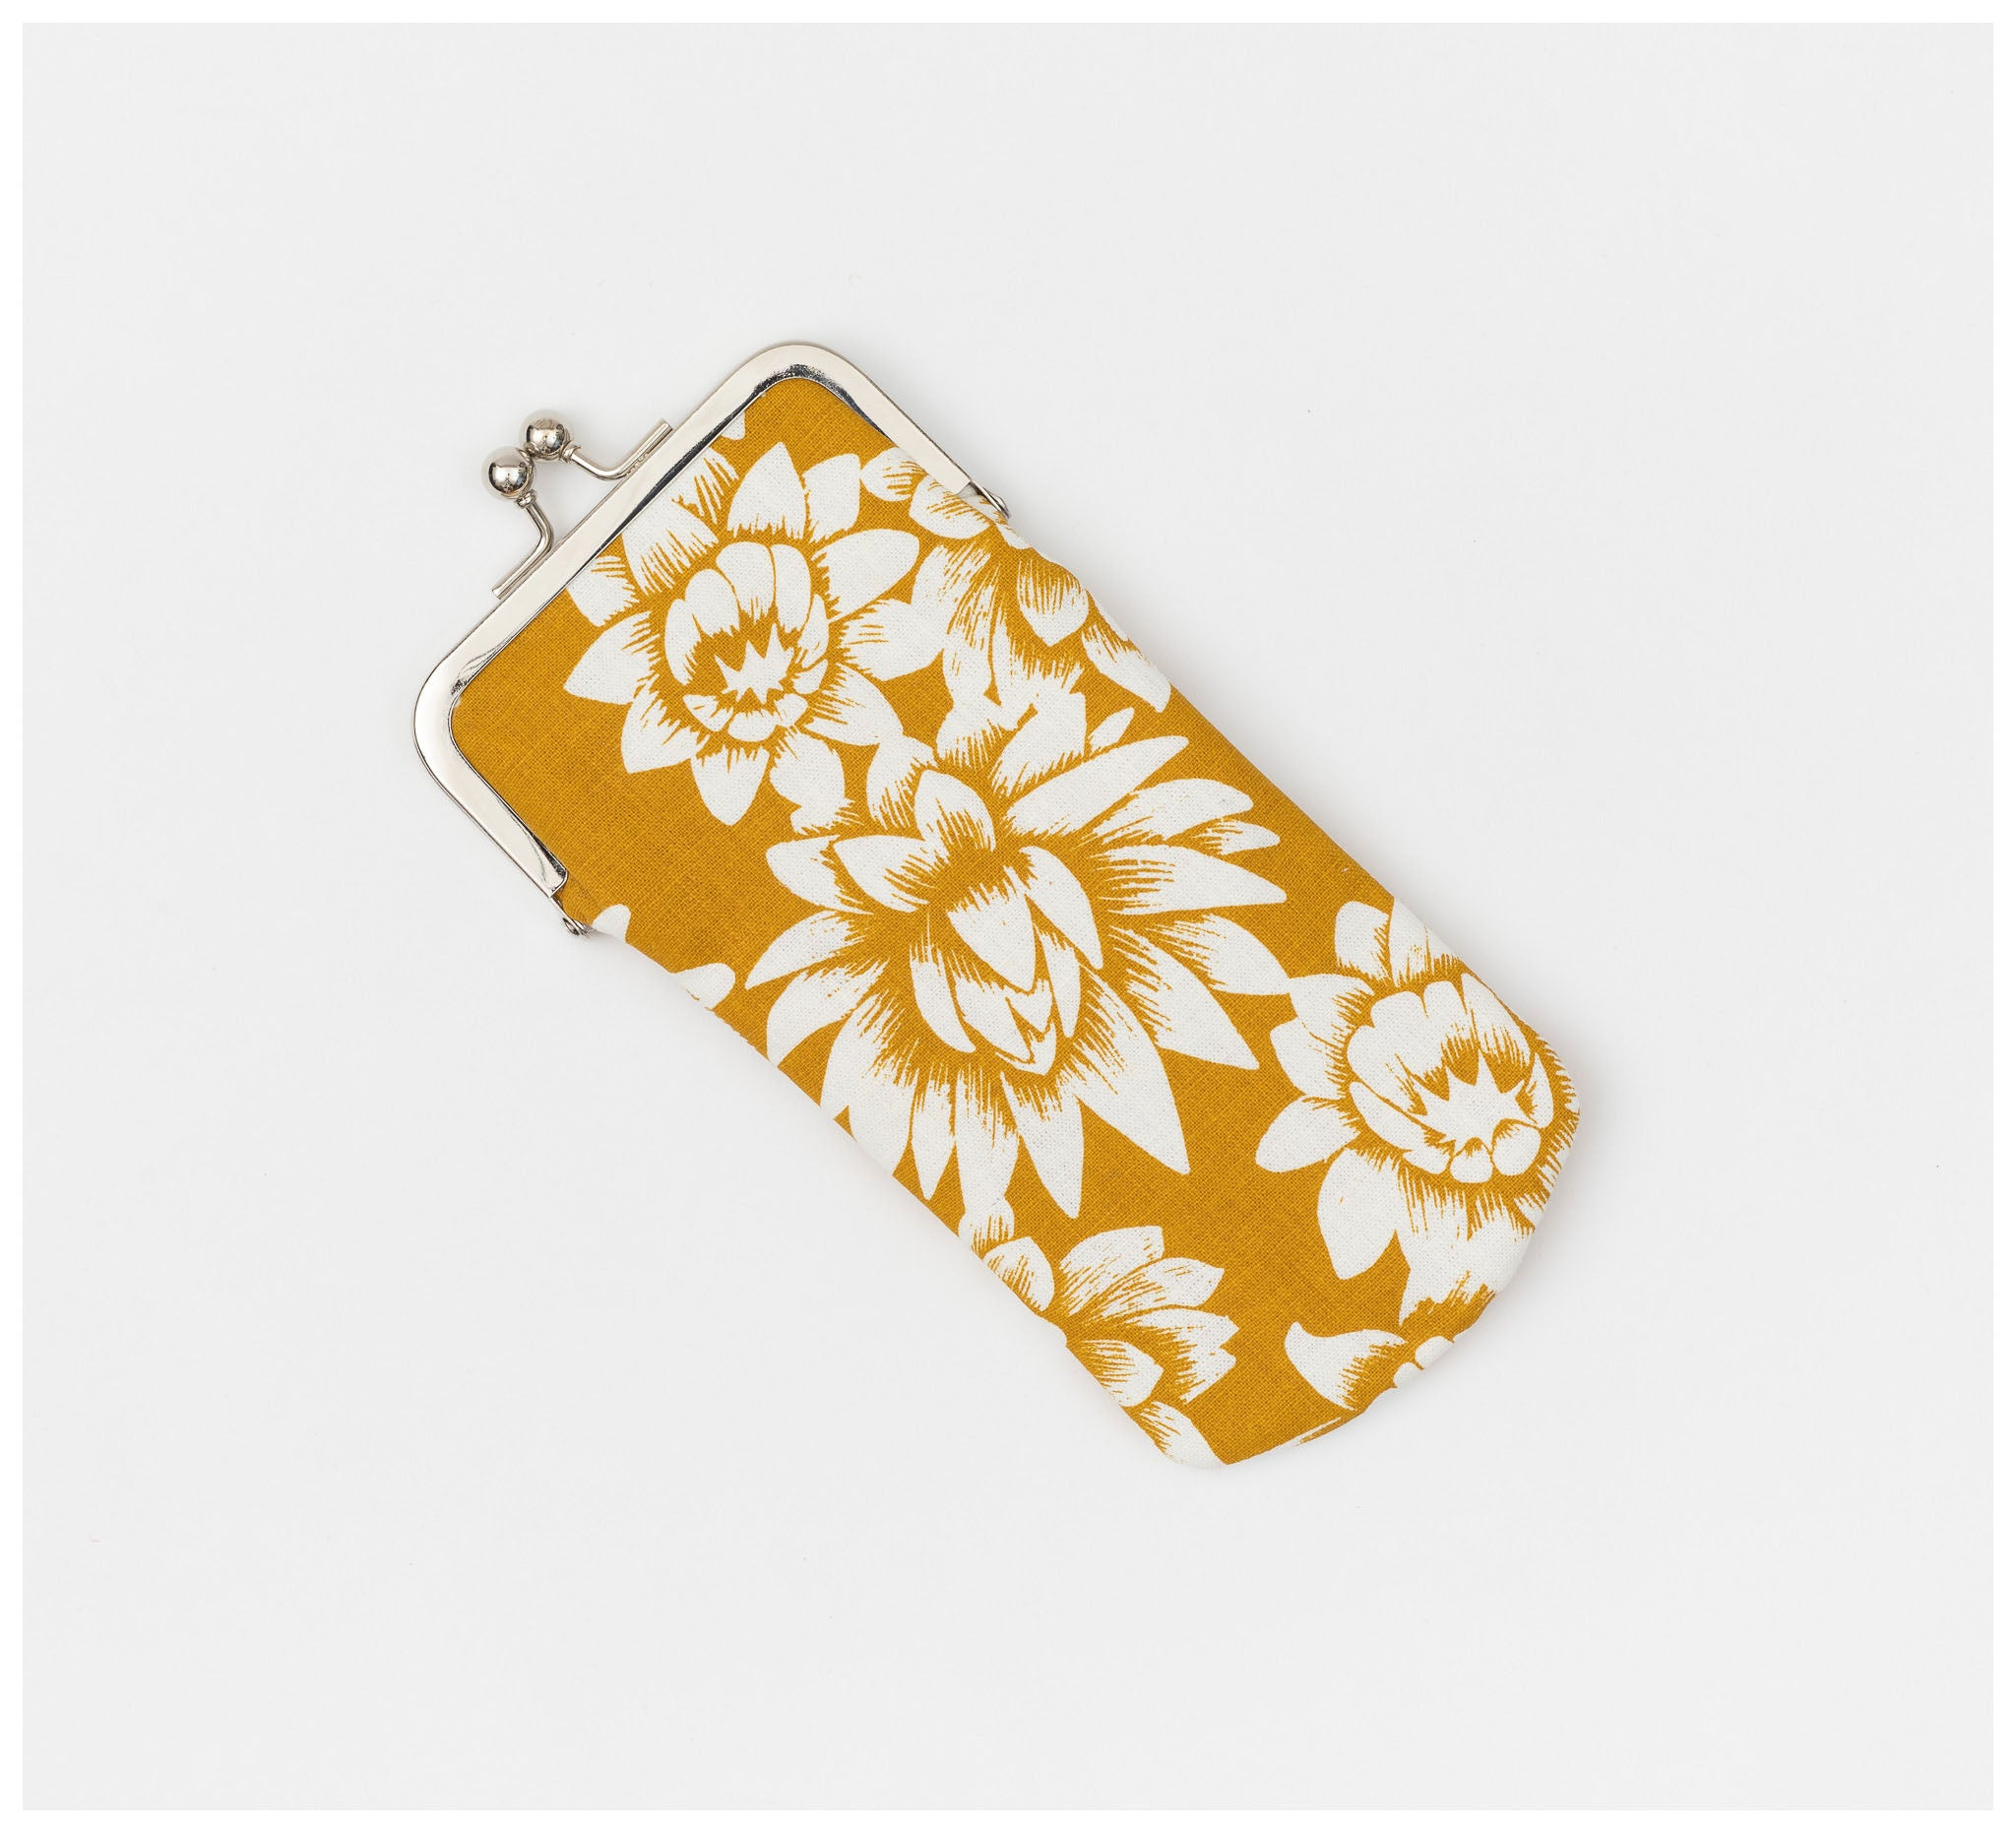 Ink & Spindle - Glasses Case – Everlasting in Yellow Ochre